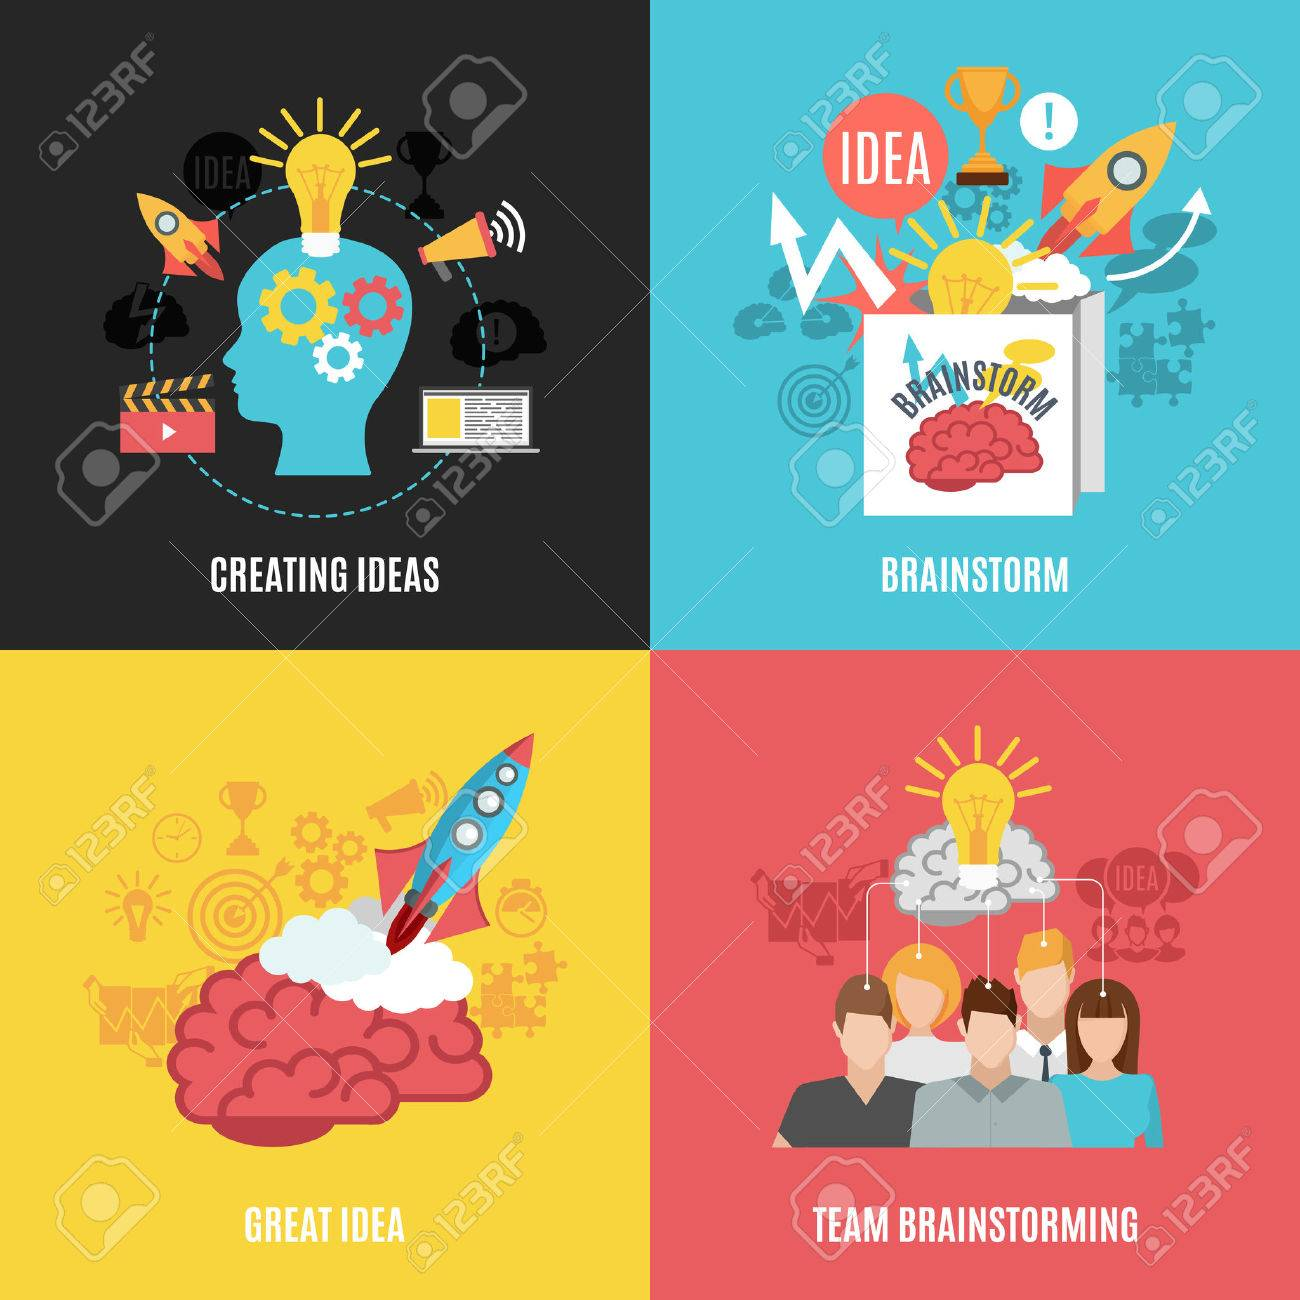 Flat 2x2 abstract compositions presenting creating ideas great idea brainstorm and team brainstorming vector illustration - 52698104